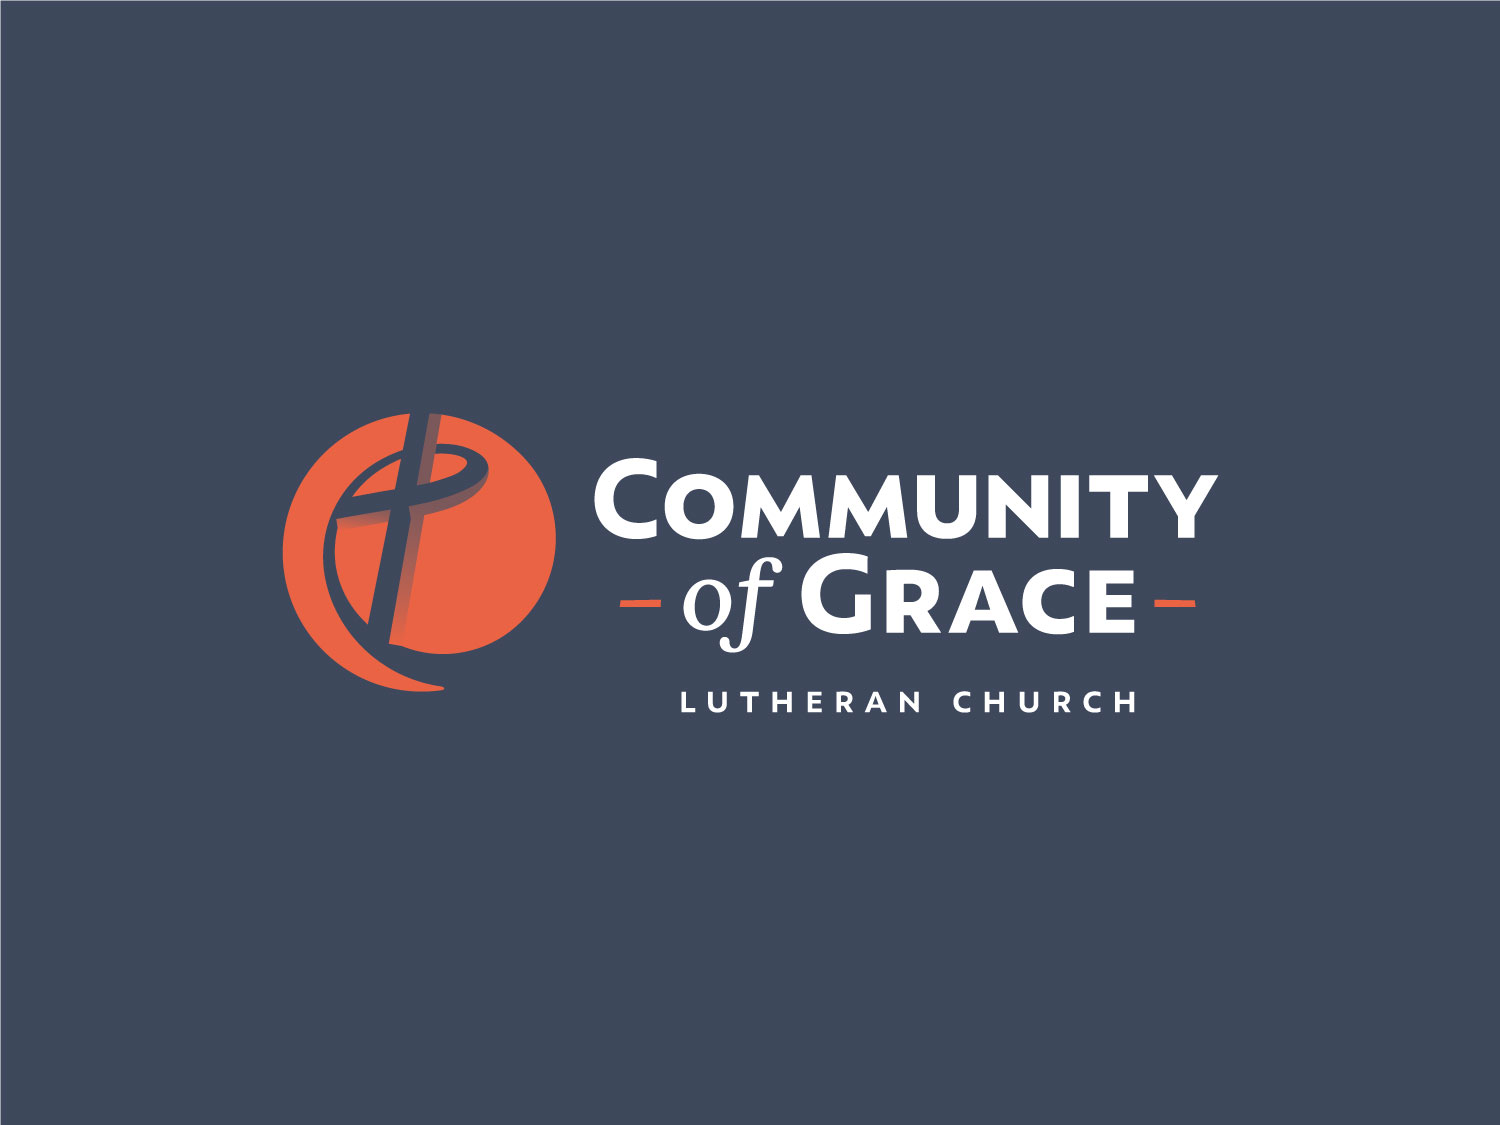 Community of Grace brandmark reversed